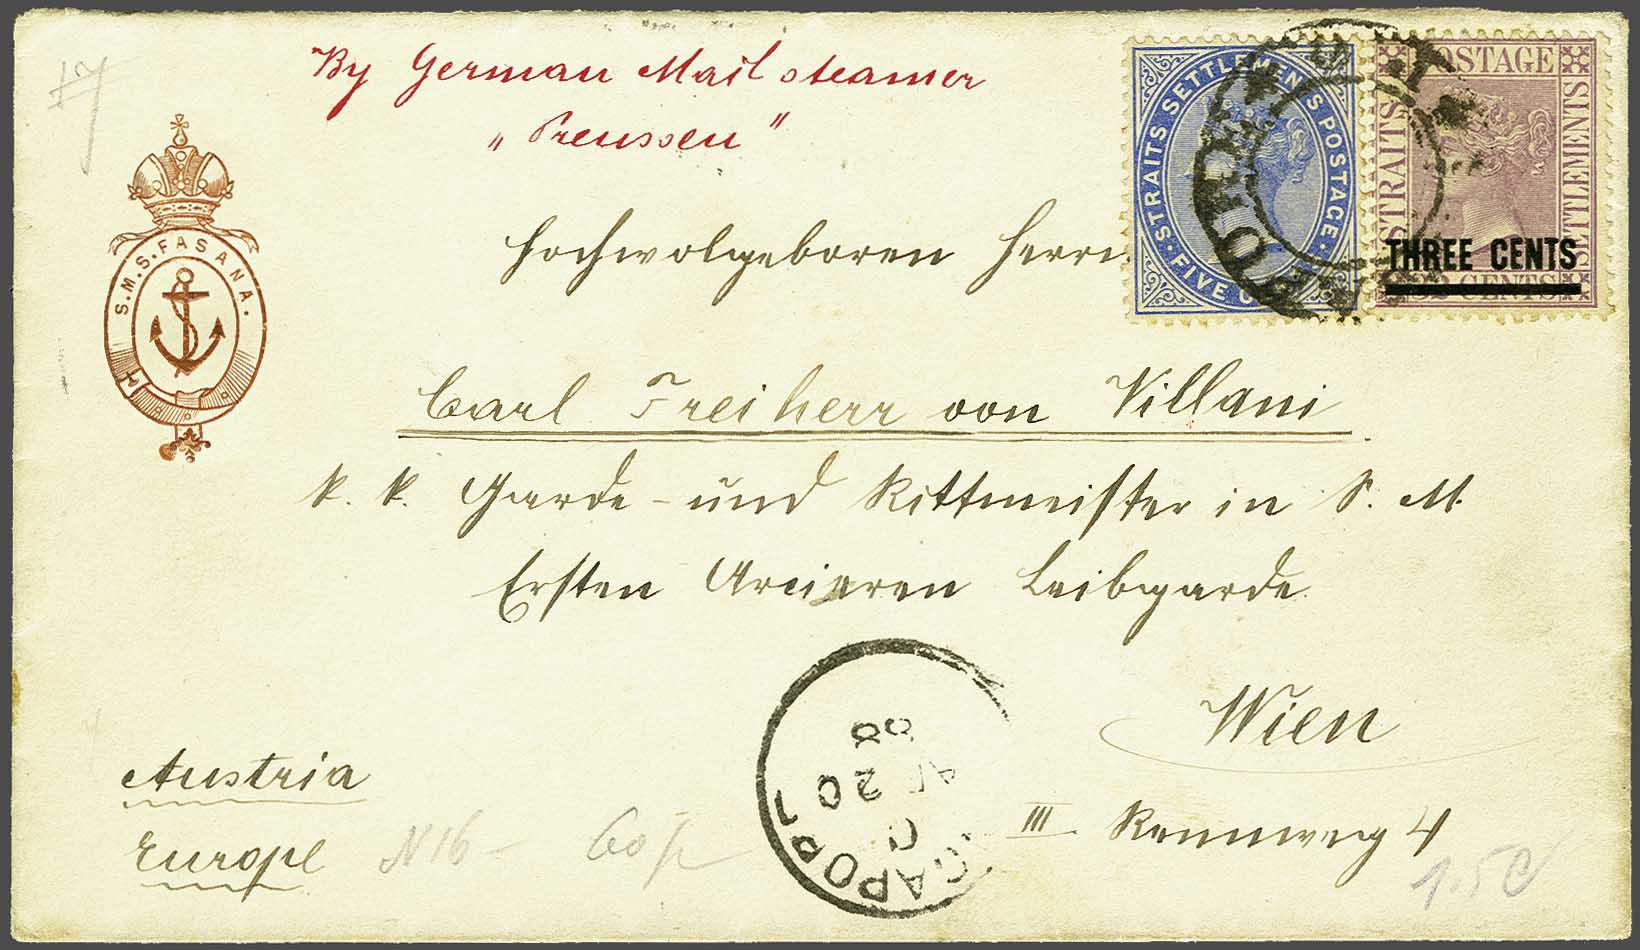 Lot 461 - Great Britain and former colonies malaysia -  Corinphila Veilingen Auction 245-246 Day 1 - Nepal - The Dick van der Wateren Collection, Foreign countries - Single lots, Picture postcards